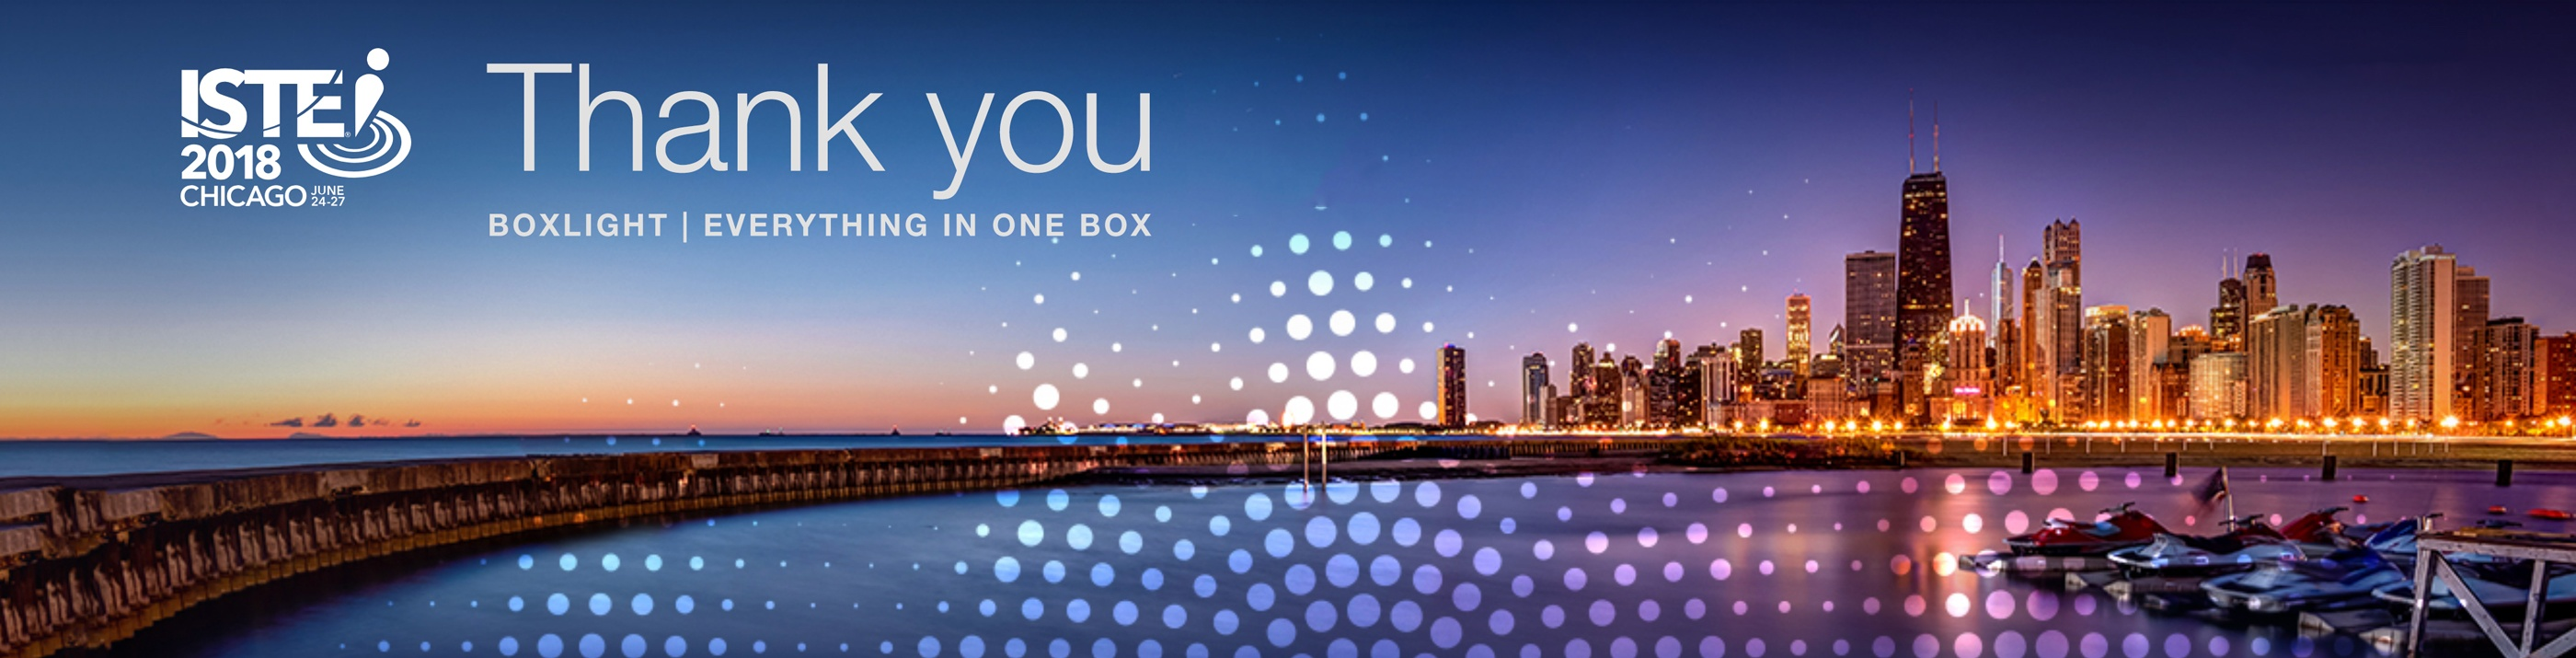 Thank you: Boxlight | Everything in one box